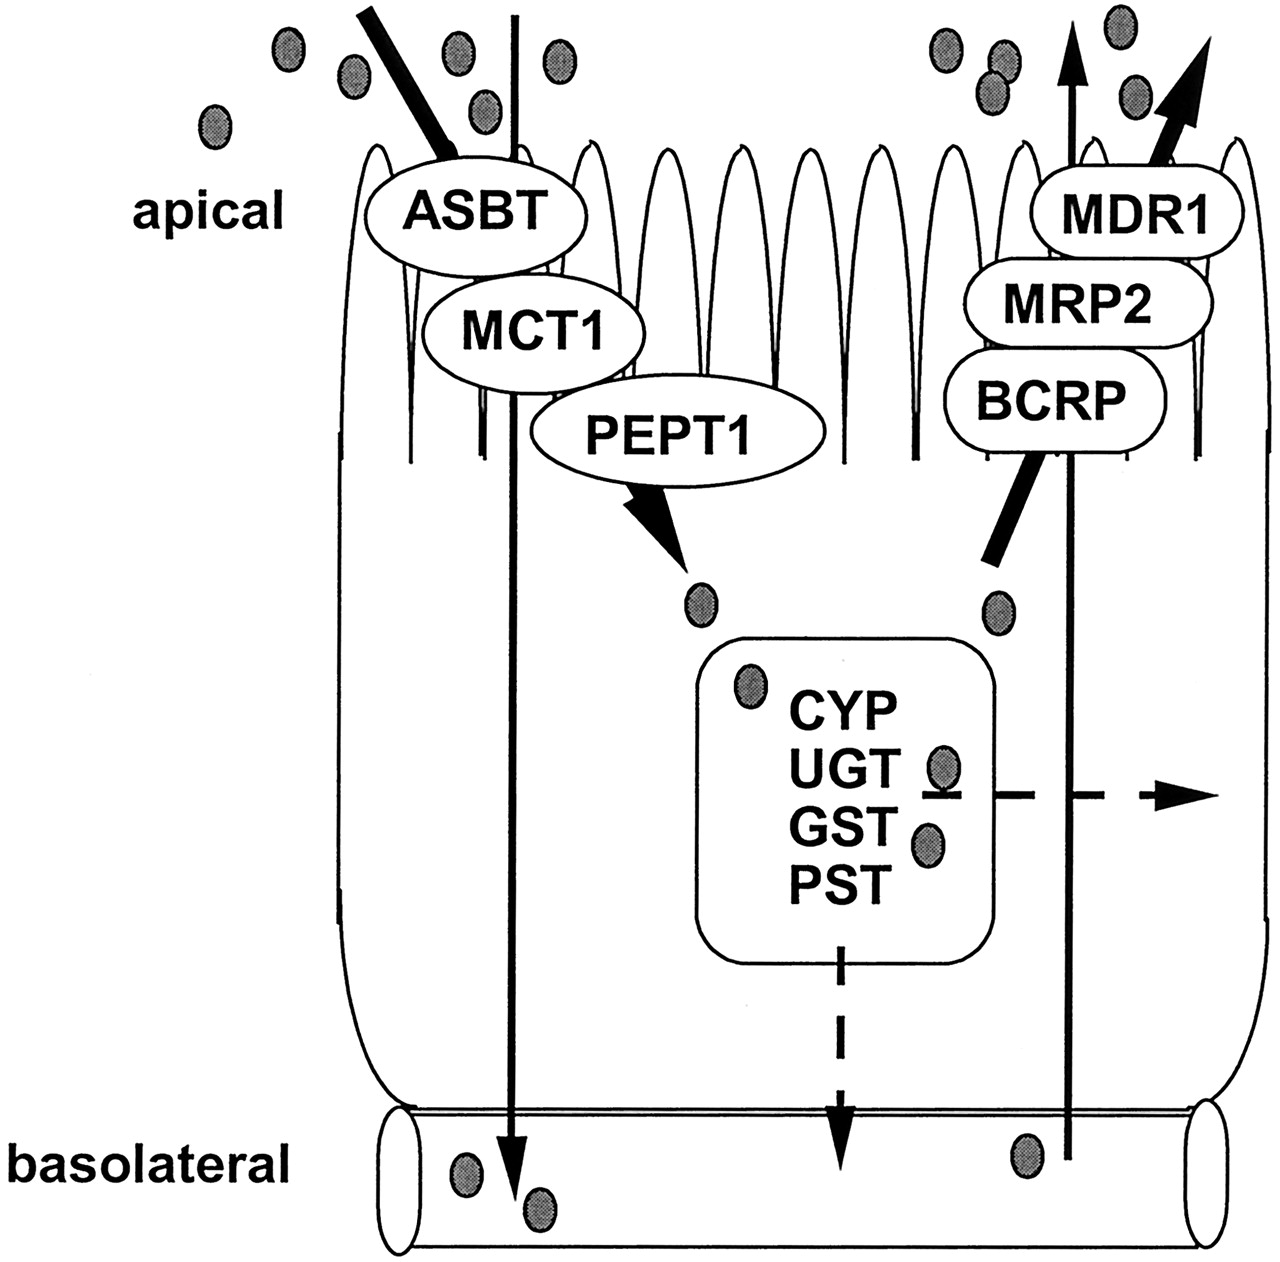 Modeling Of Intestinal Drug Absorption Roles Of